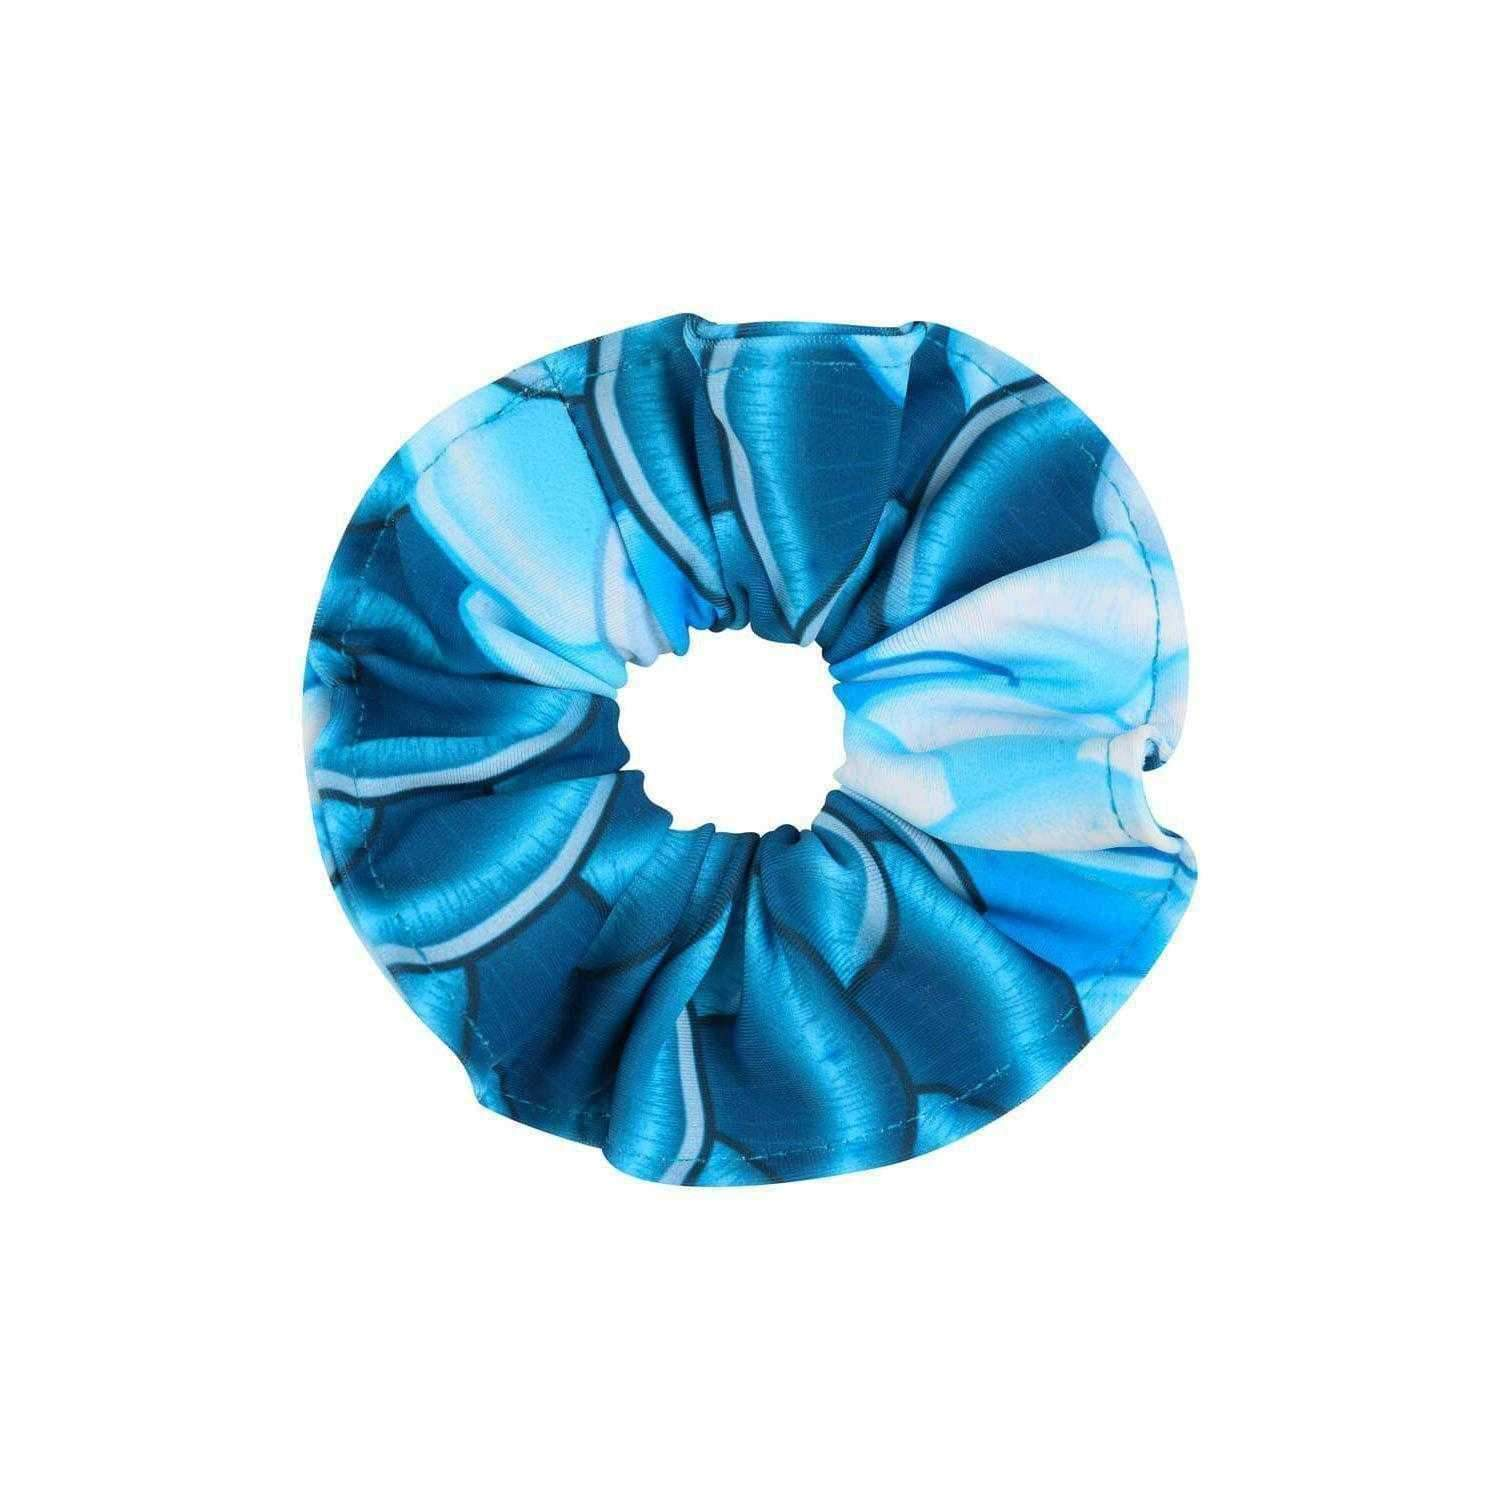 Kensington Bluebell Hair Scrunchie - Mermaids Tail UK